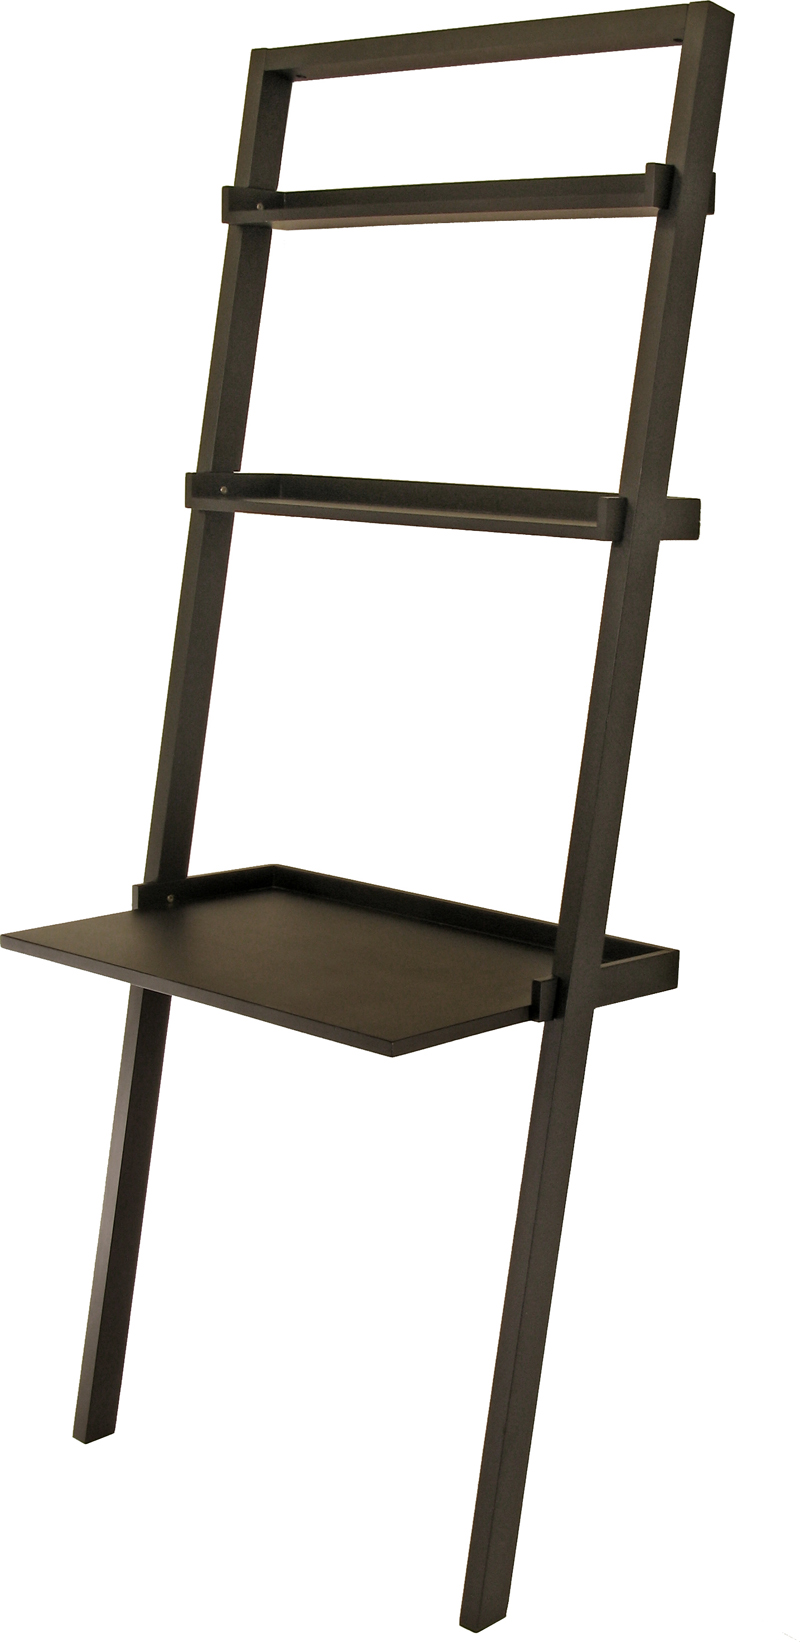 Winsome 29330 Black Leaning Desk with Shelf